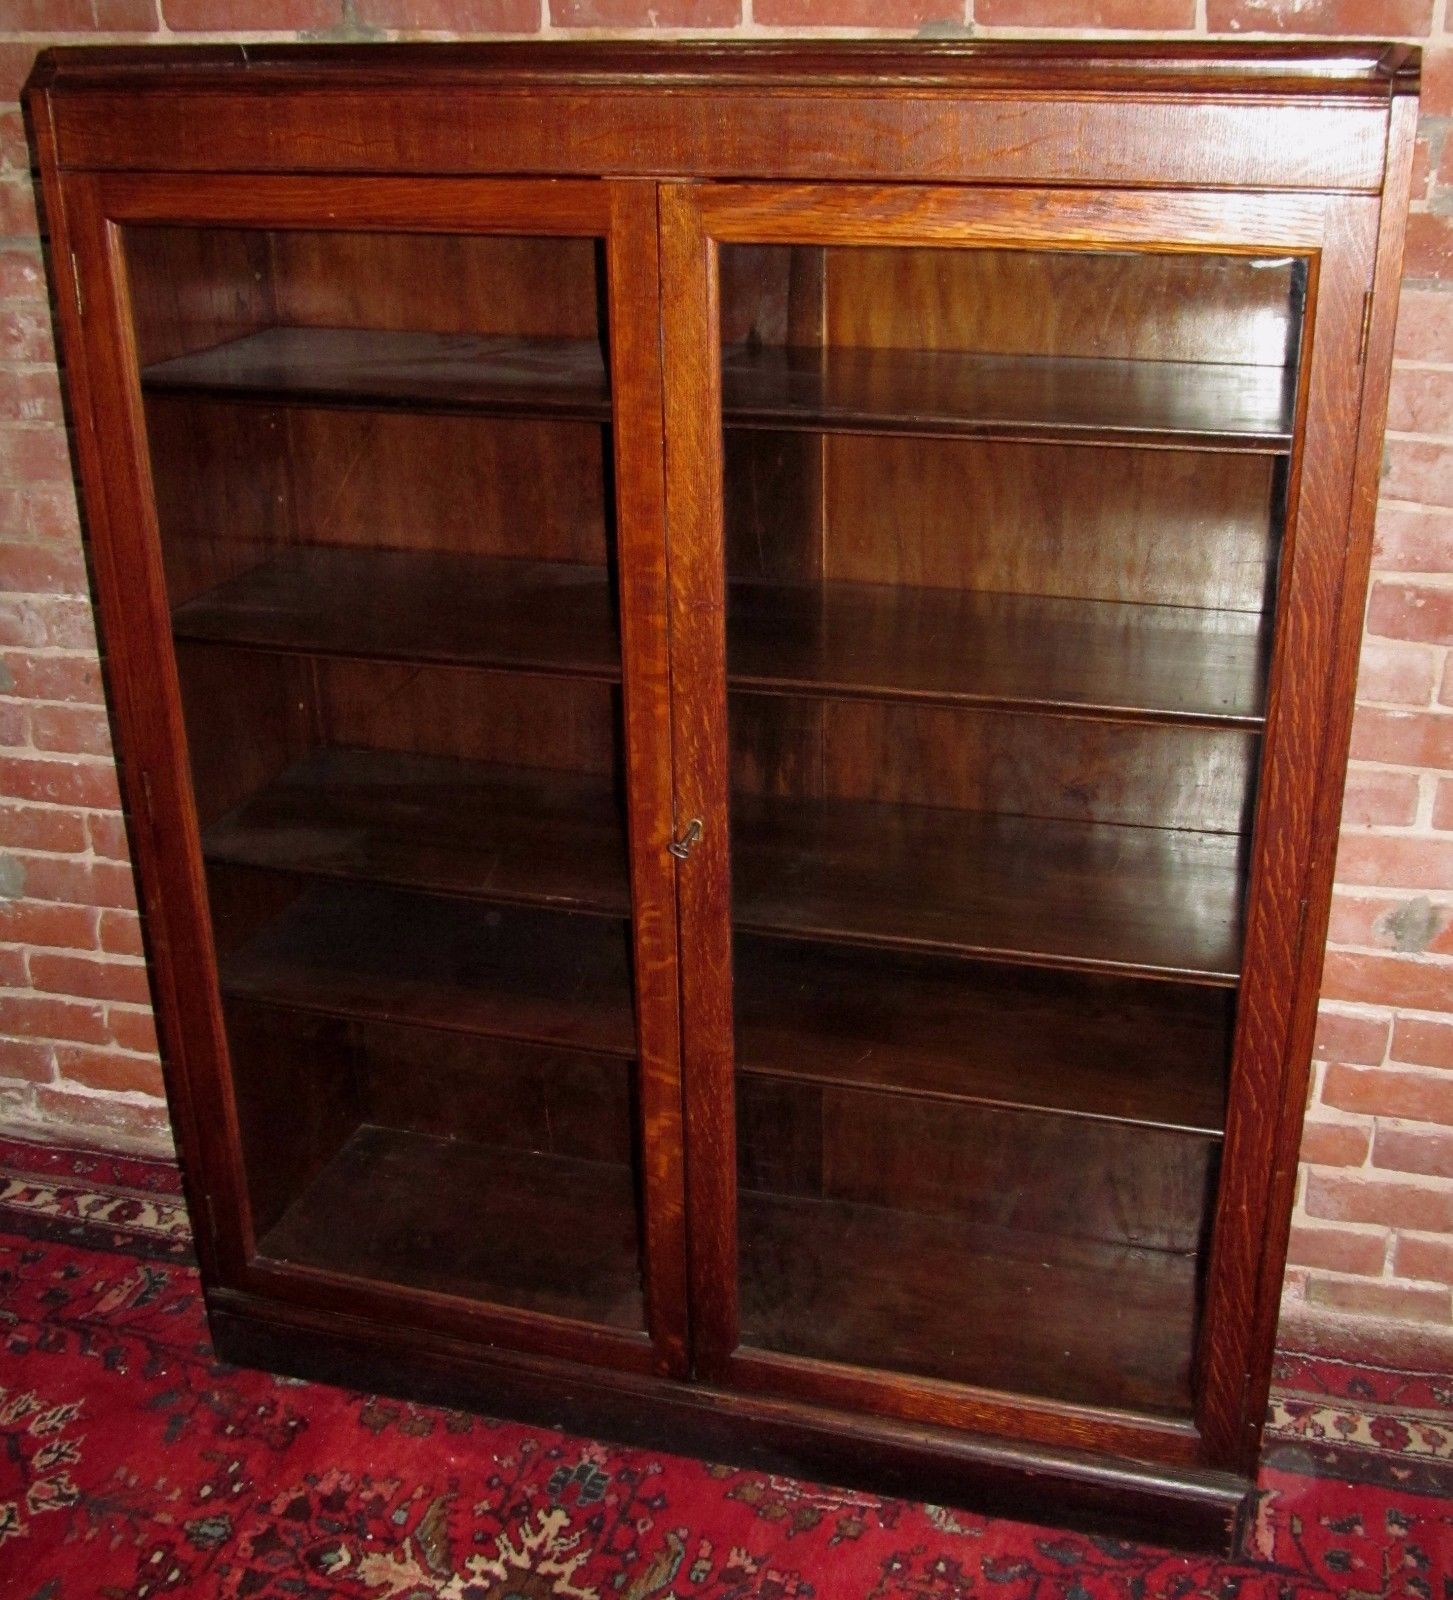 Antique Oak Bookcase with Glass Doors - Cool Furniture Ideas Check more at  http:/ - Antique Oak Bookcase With Glass Doors - Cool Furniture Ideas Check